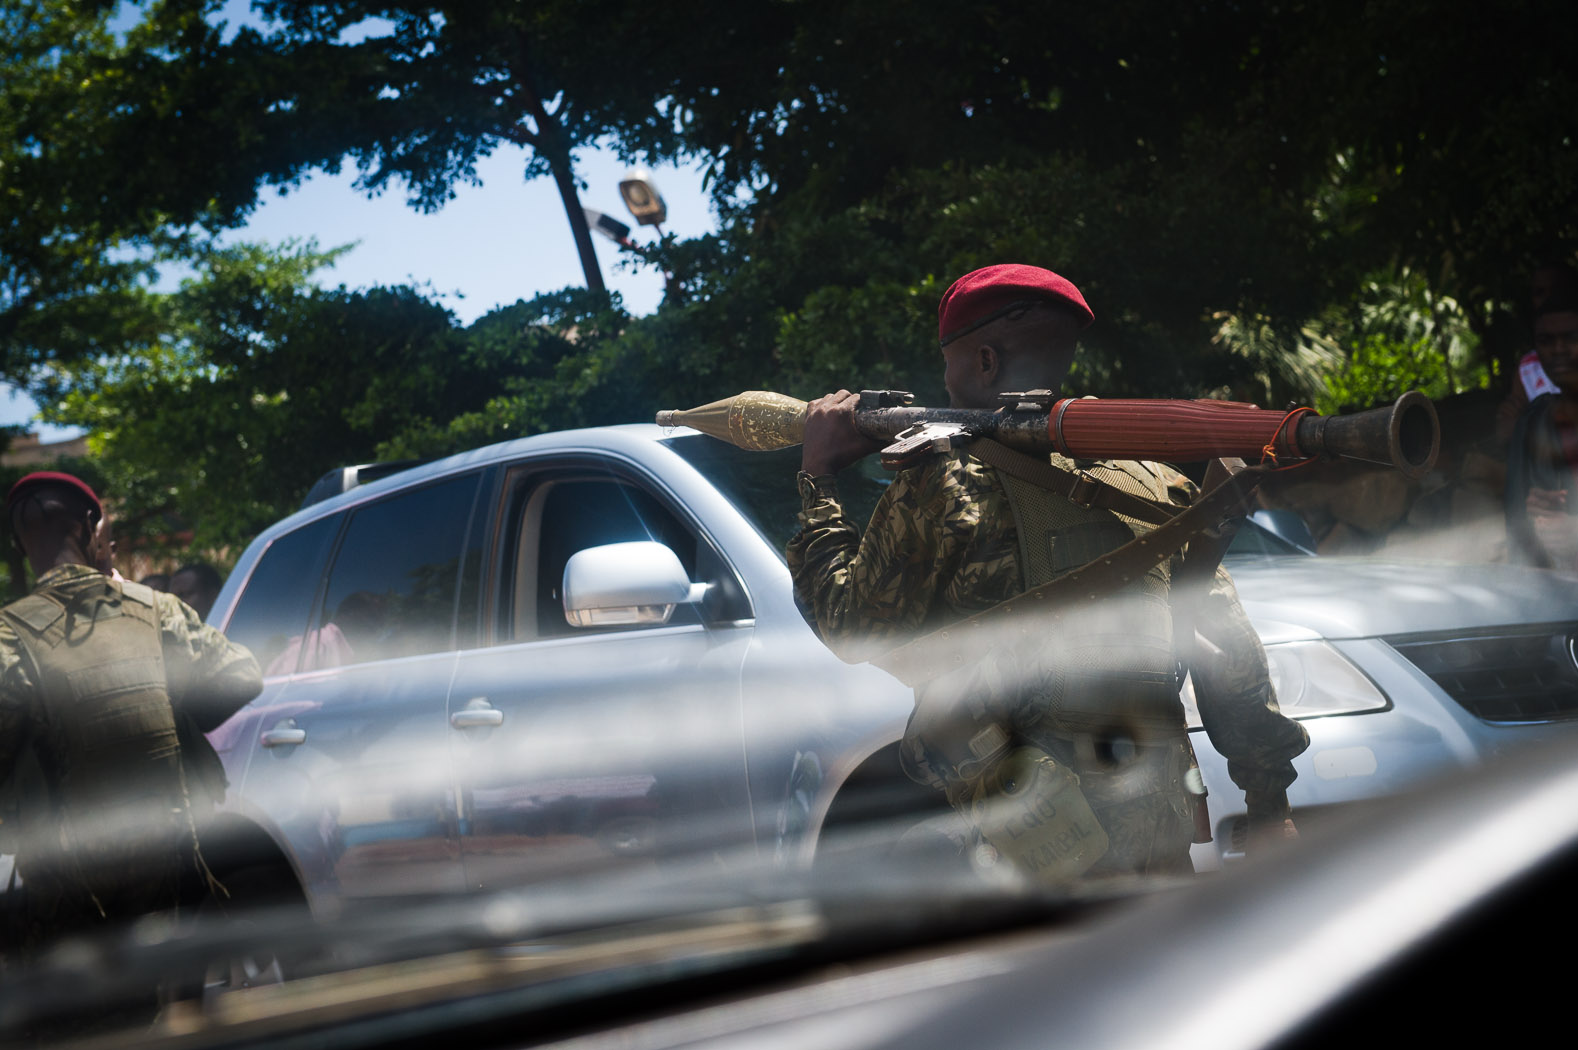 An group calling for independence of Katanga province also attacked a polling station in Lubumbashi, resulting in several deaths. The Republican Guard, army and armed police were deployed to track down the perpetrators.